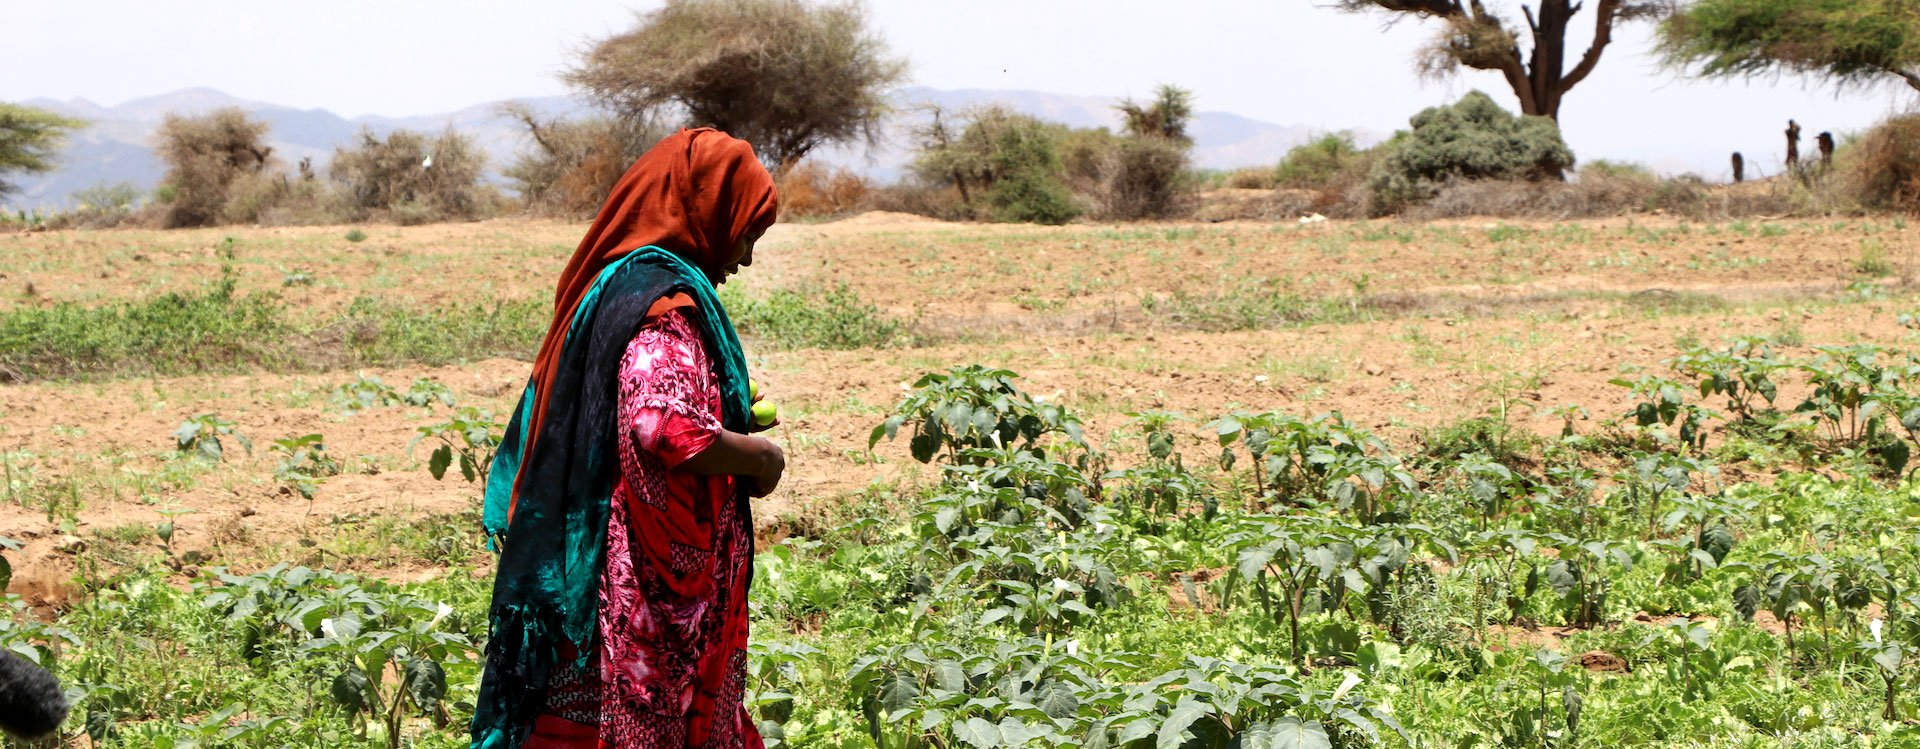 Crops grown from irrigation system near Ruqi village in Somaliland